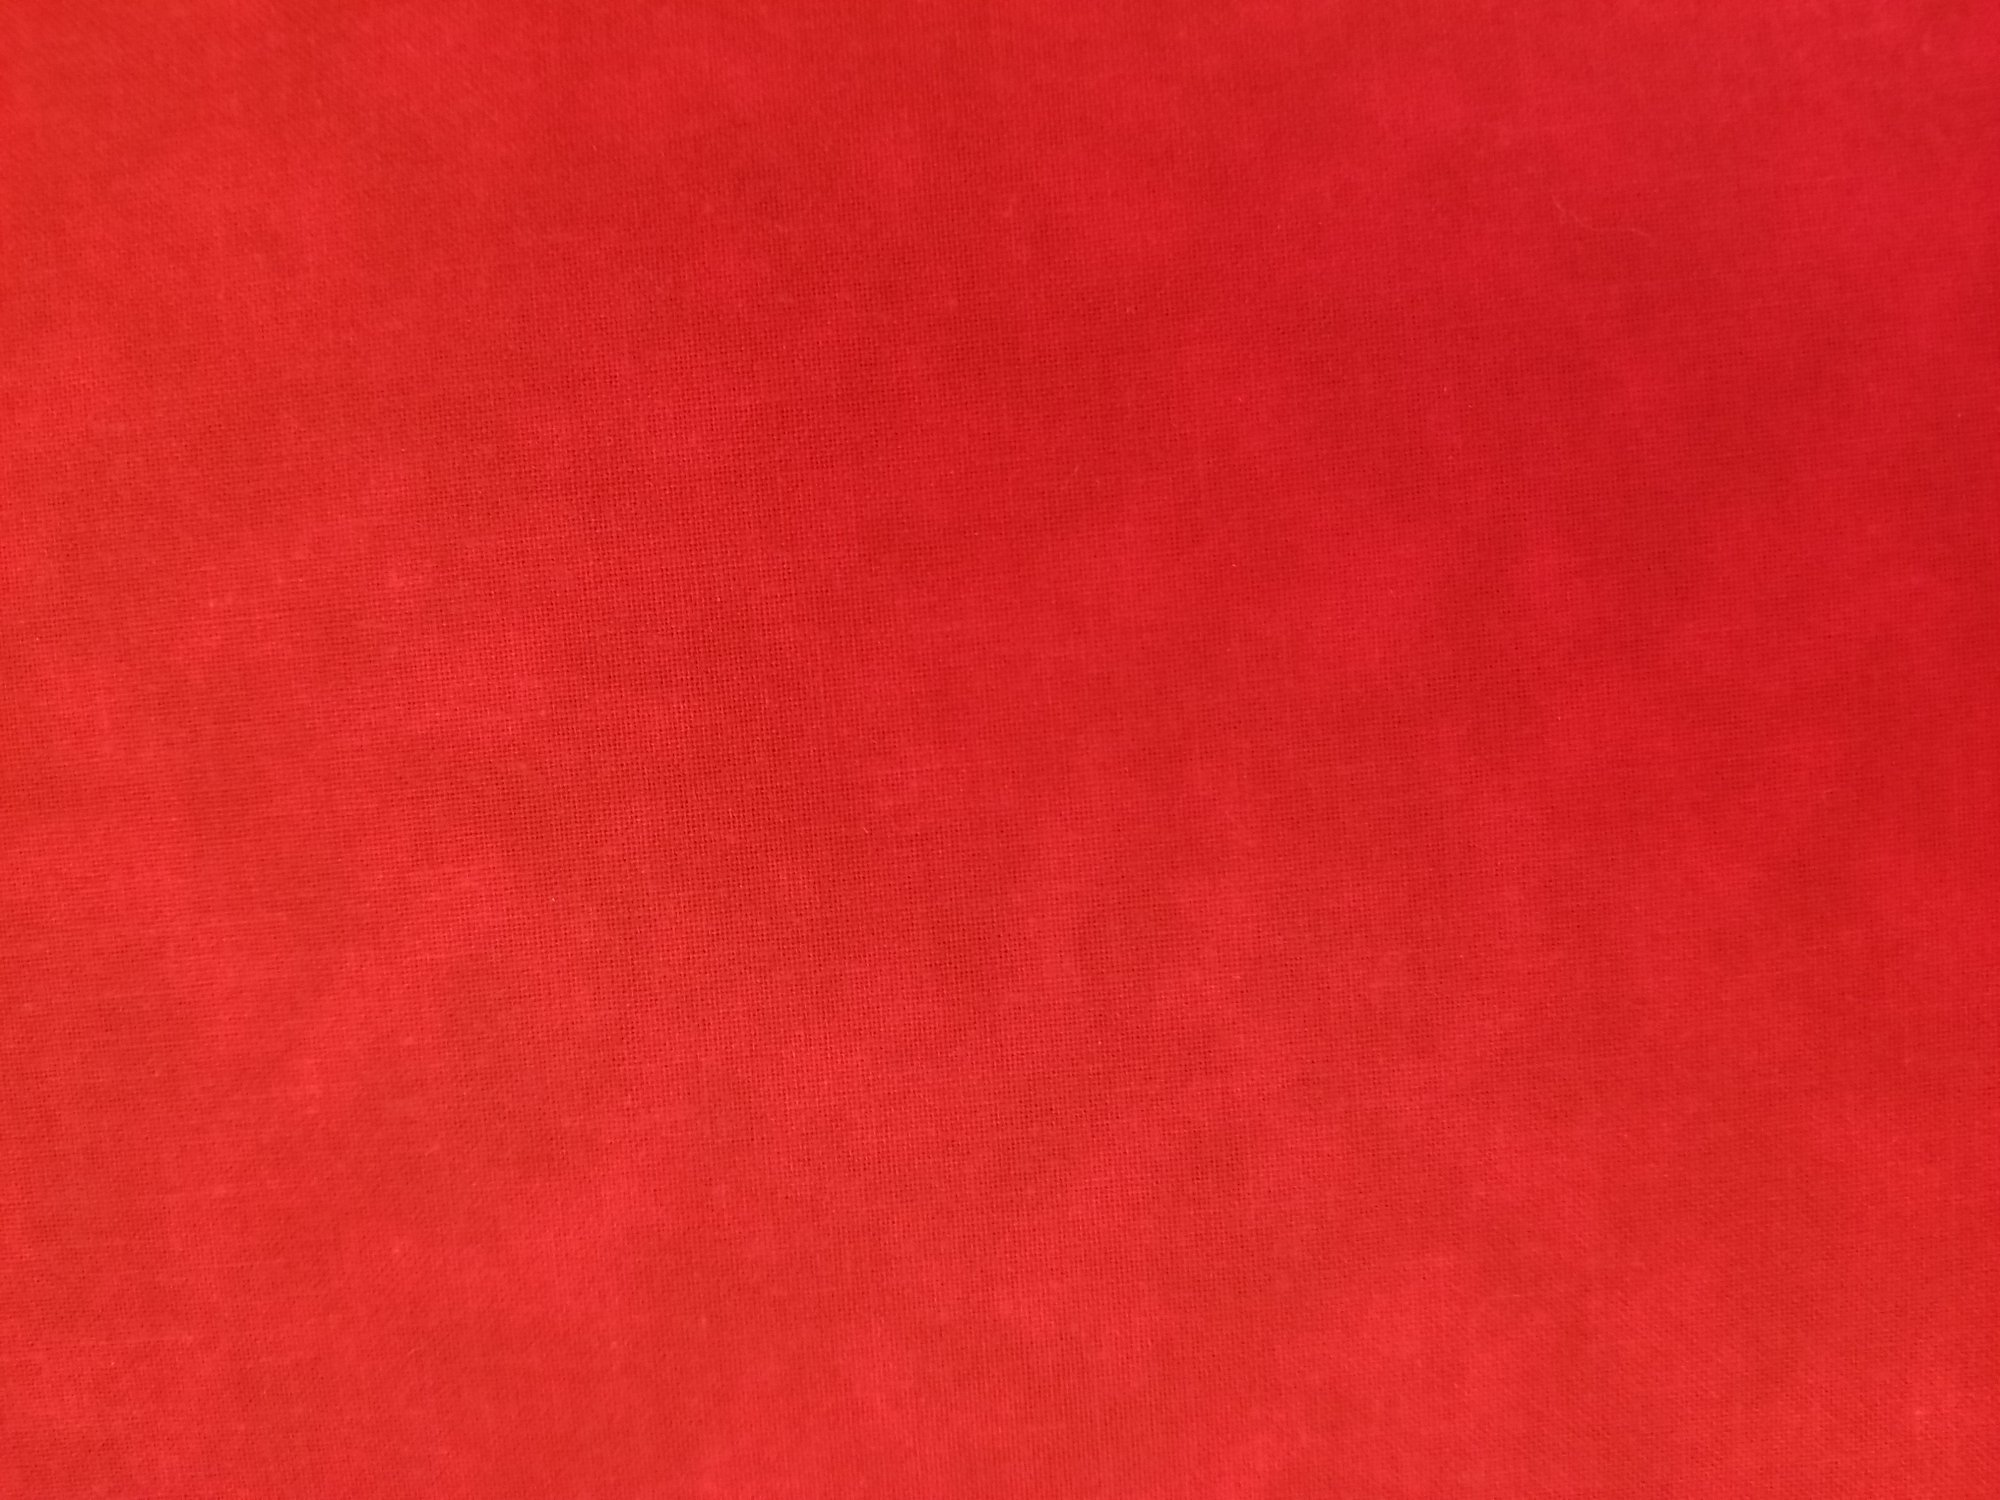 108 Plain Red Quilt Backing